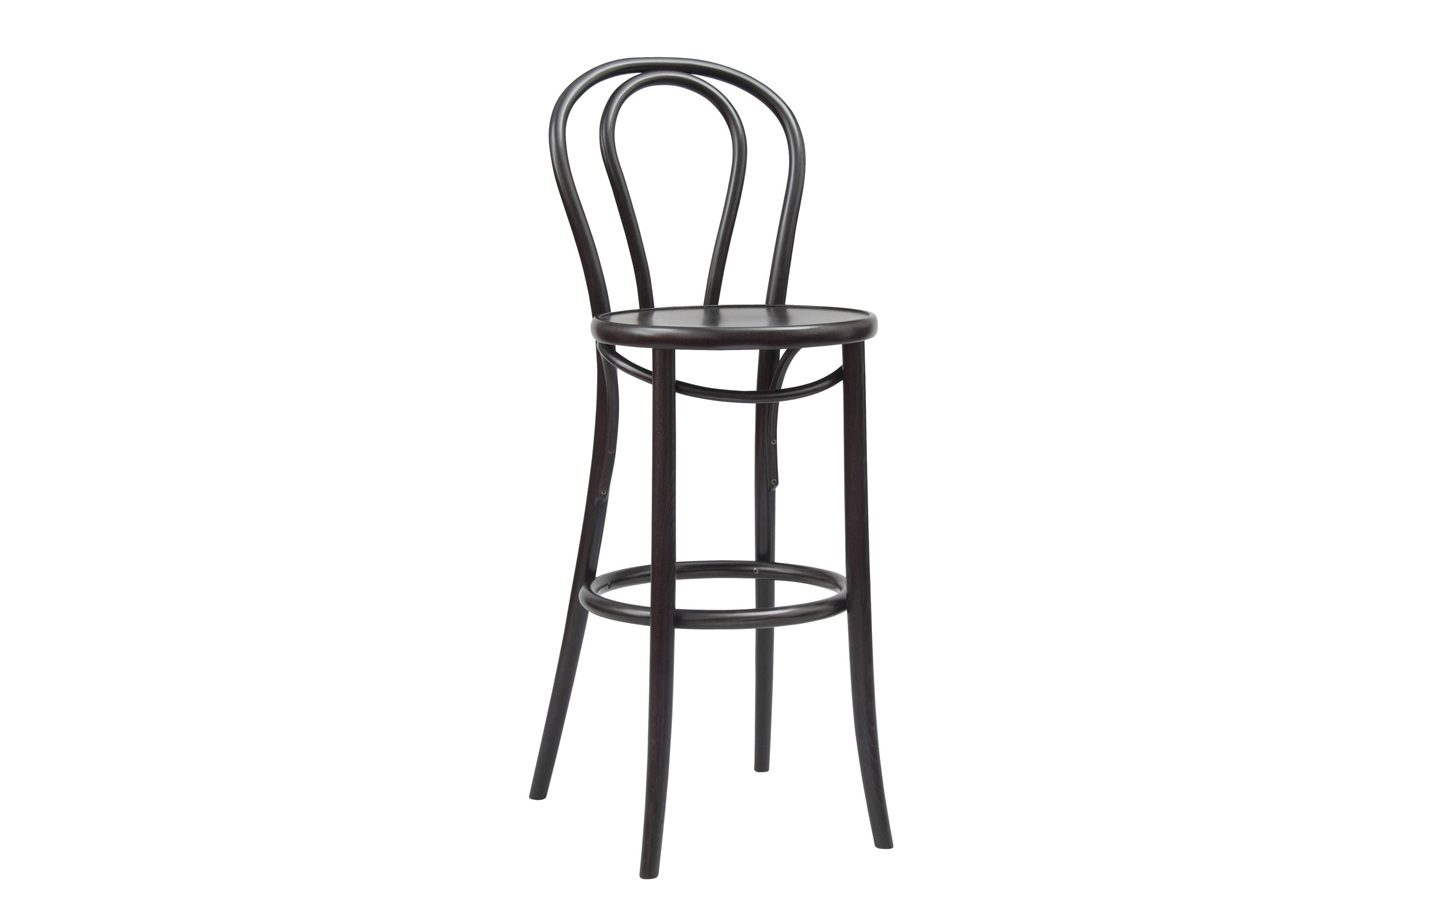 18-Barstool-Bent-wood-Ton-01